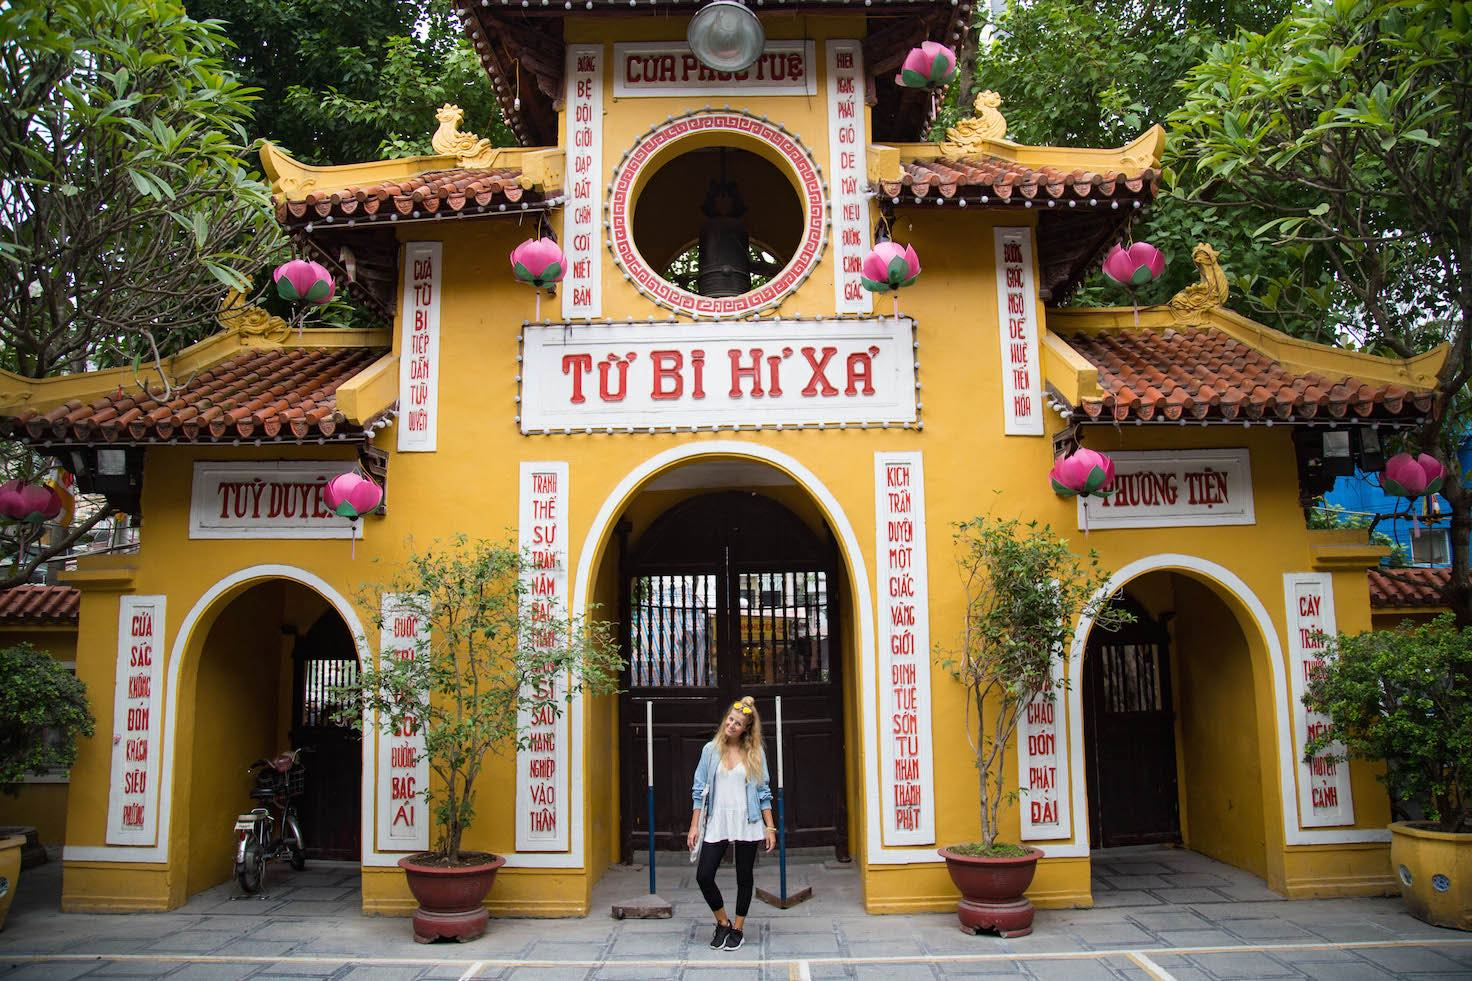 Hanoi-moments of yugen-pagoda